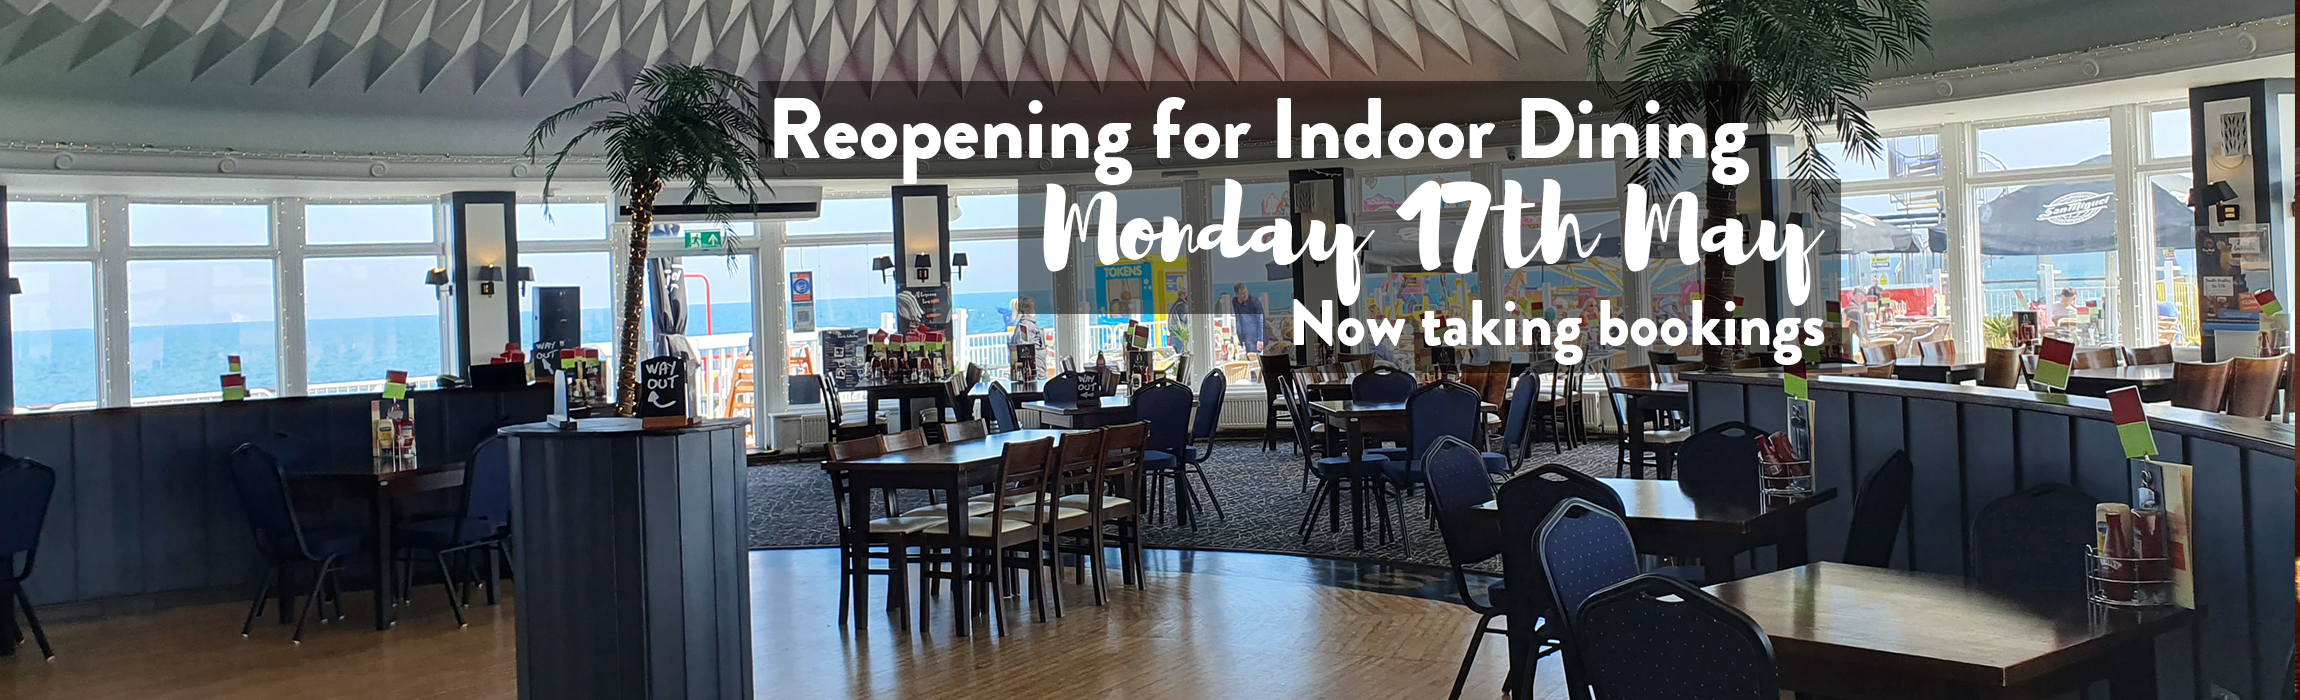 Reopening Indoor Dining